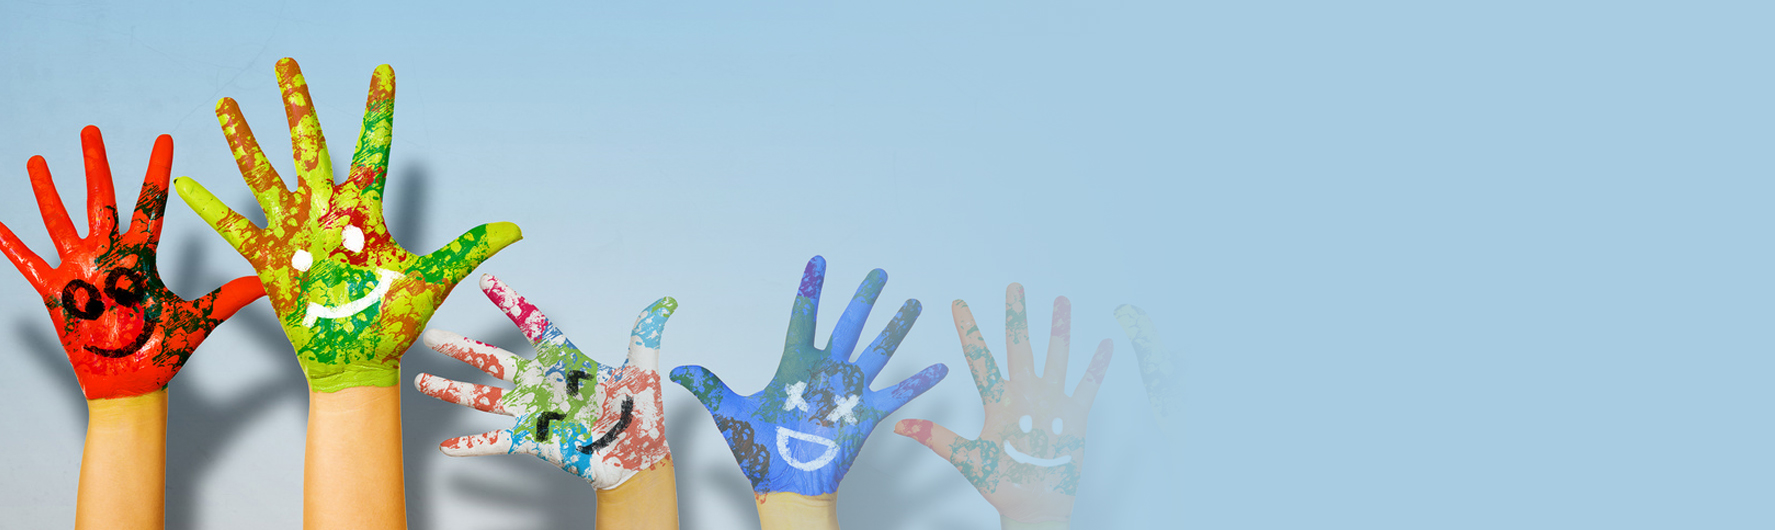 Children's hands painted